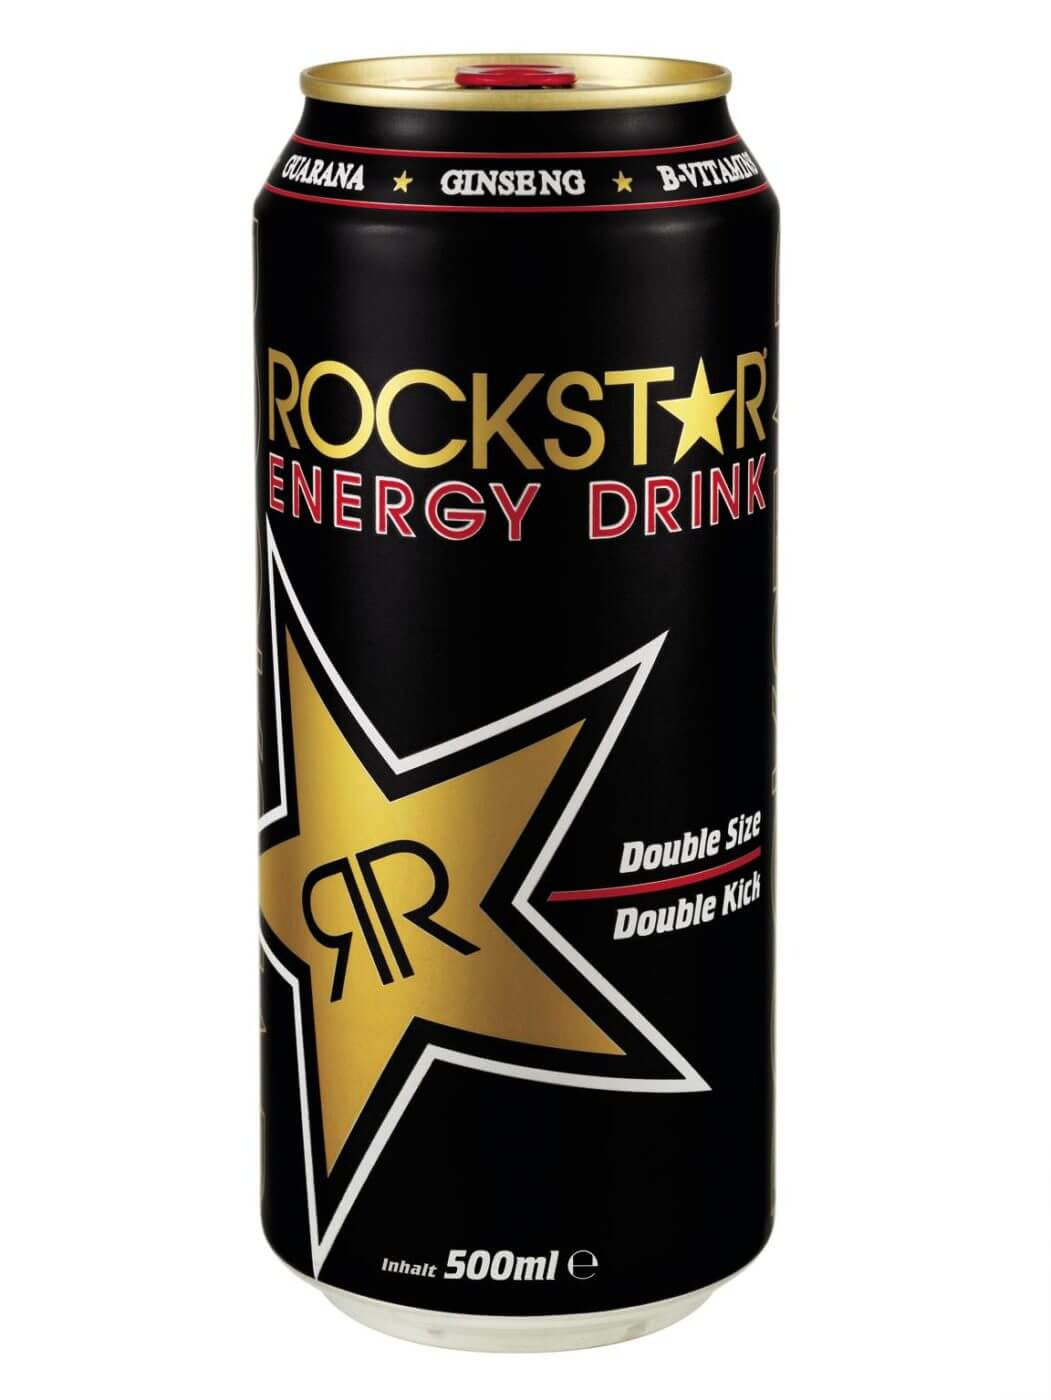 Rockstar energy drink review does it work side effects for 5 star energy